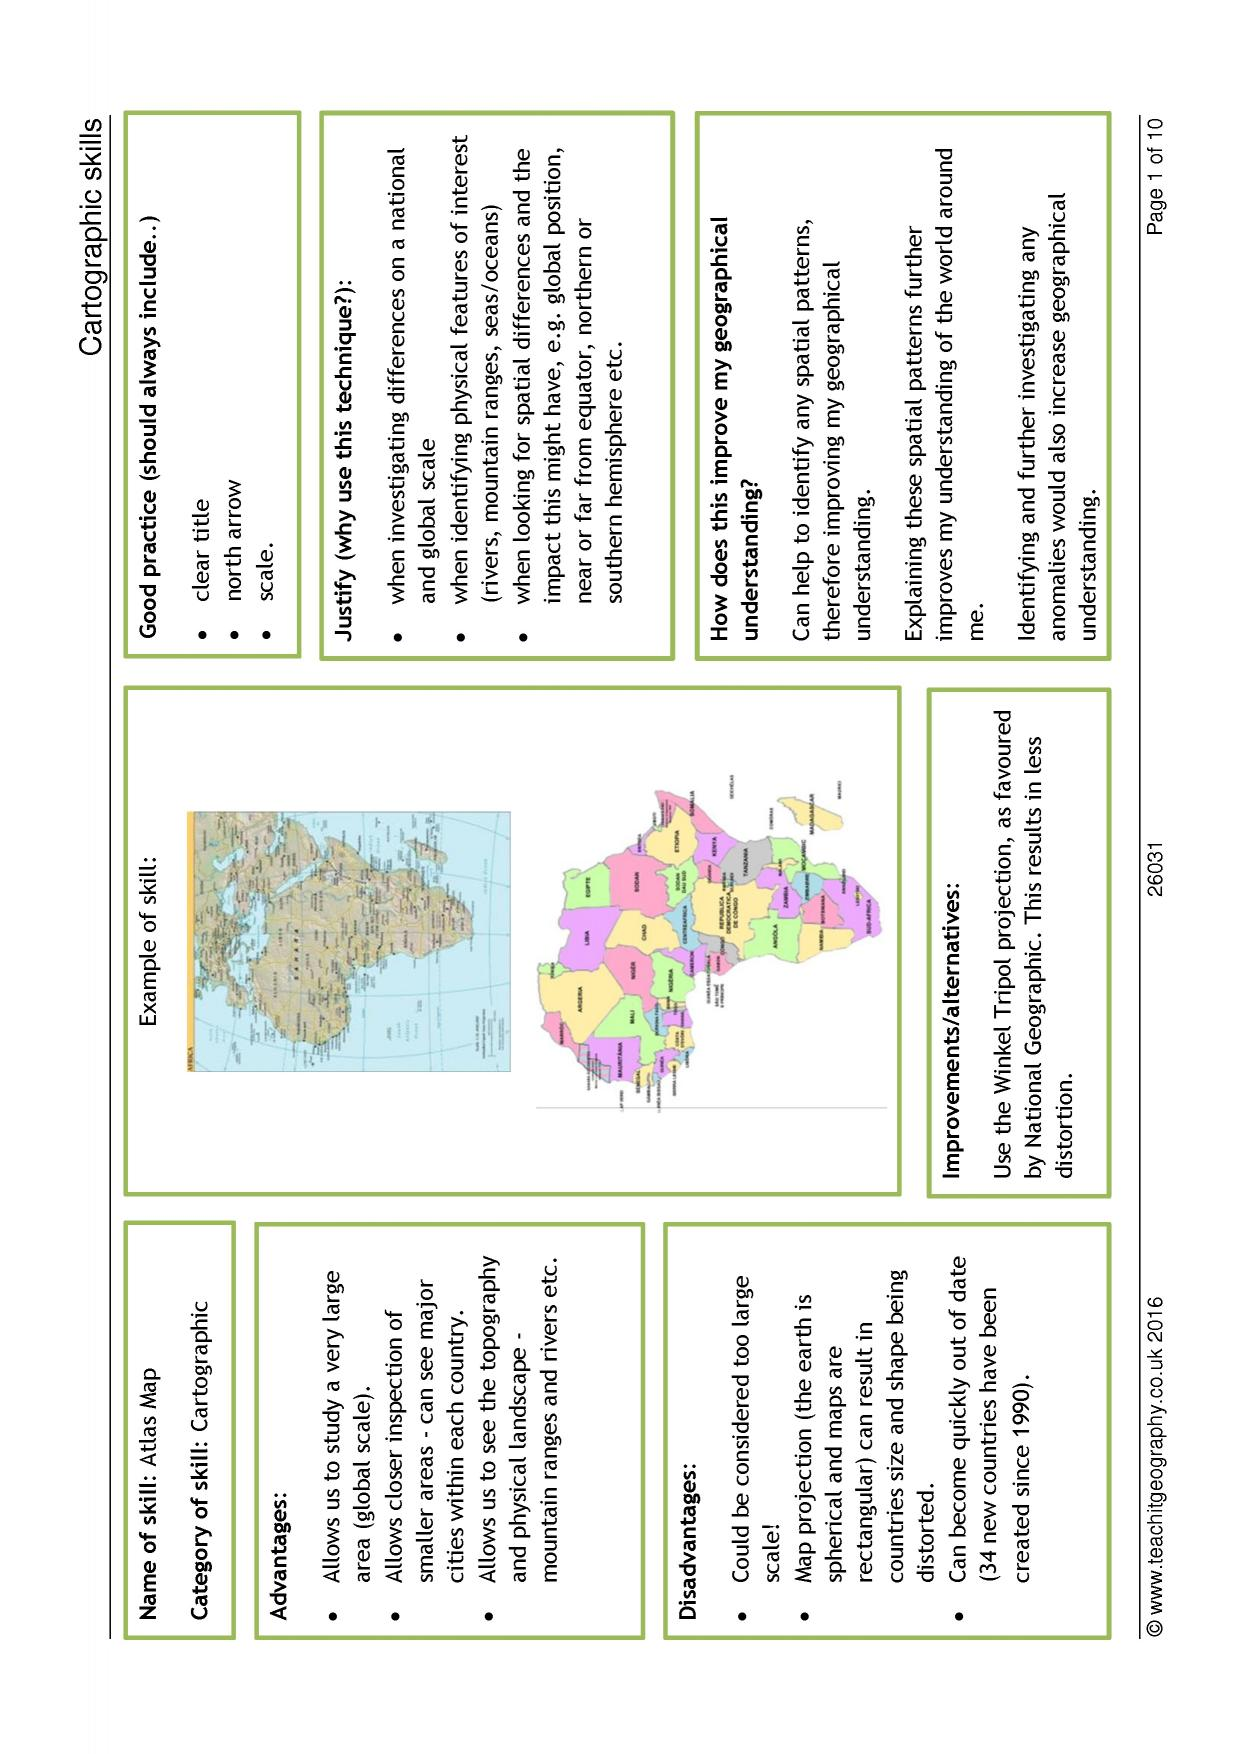 teachit geography latest resources 1 preview